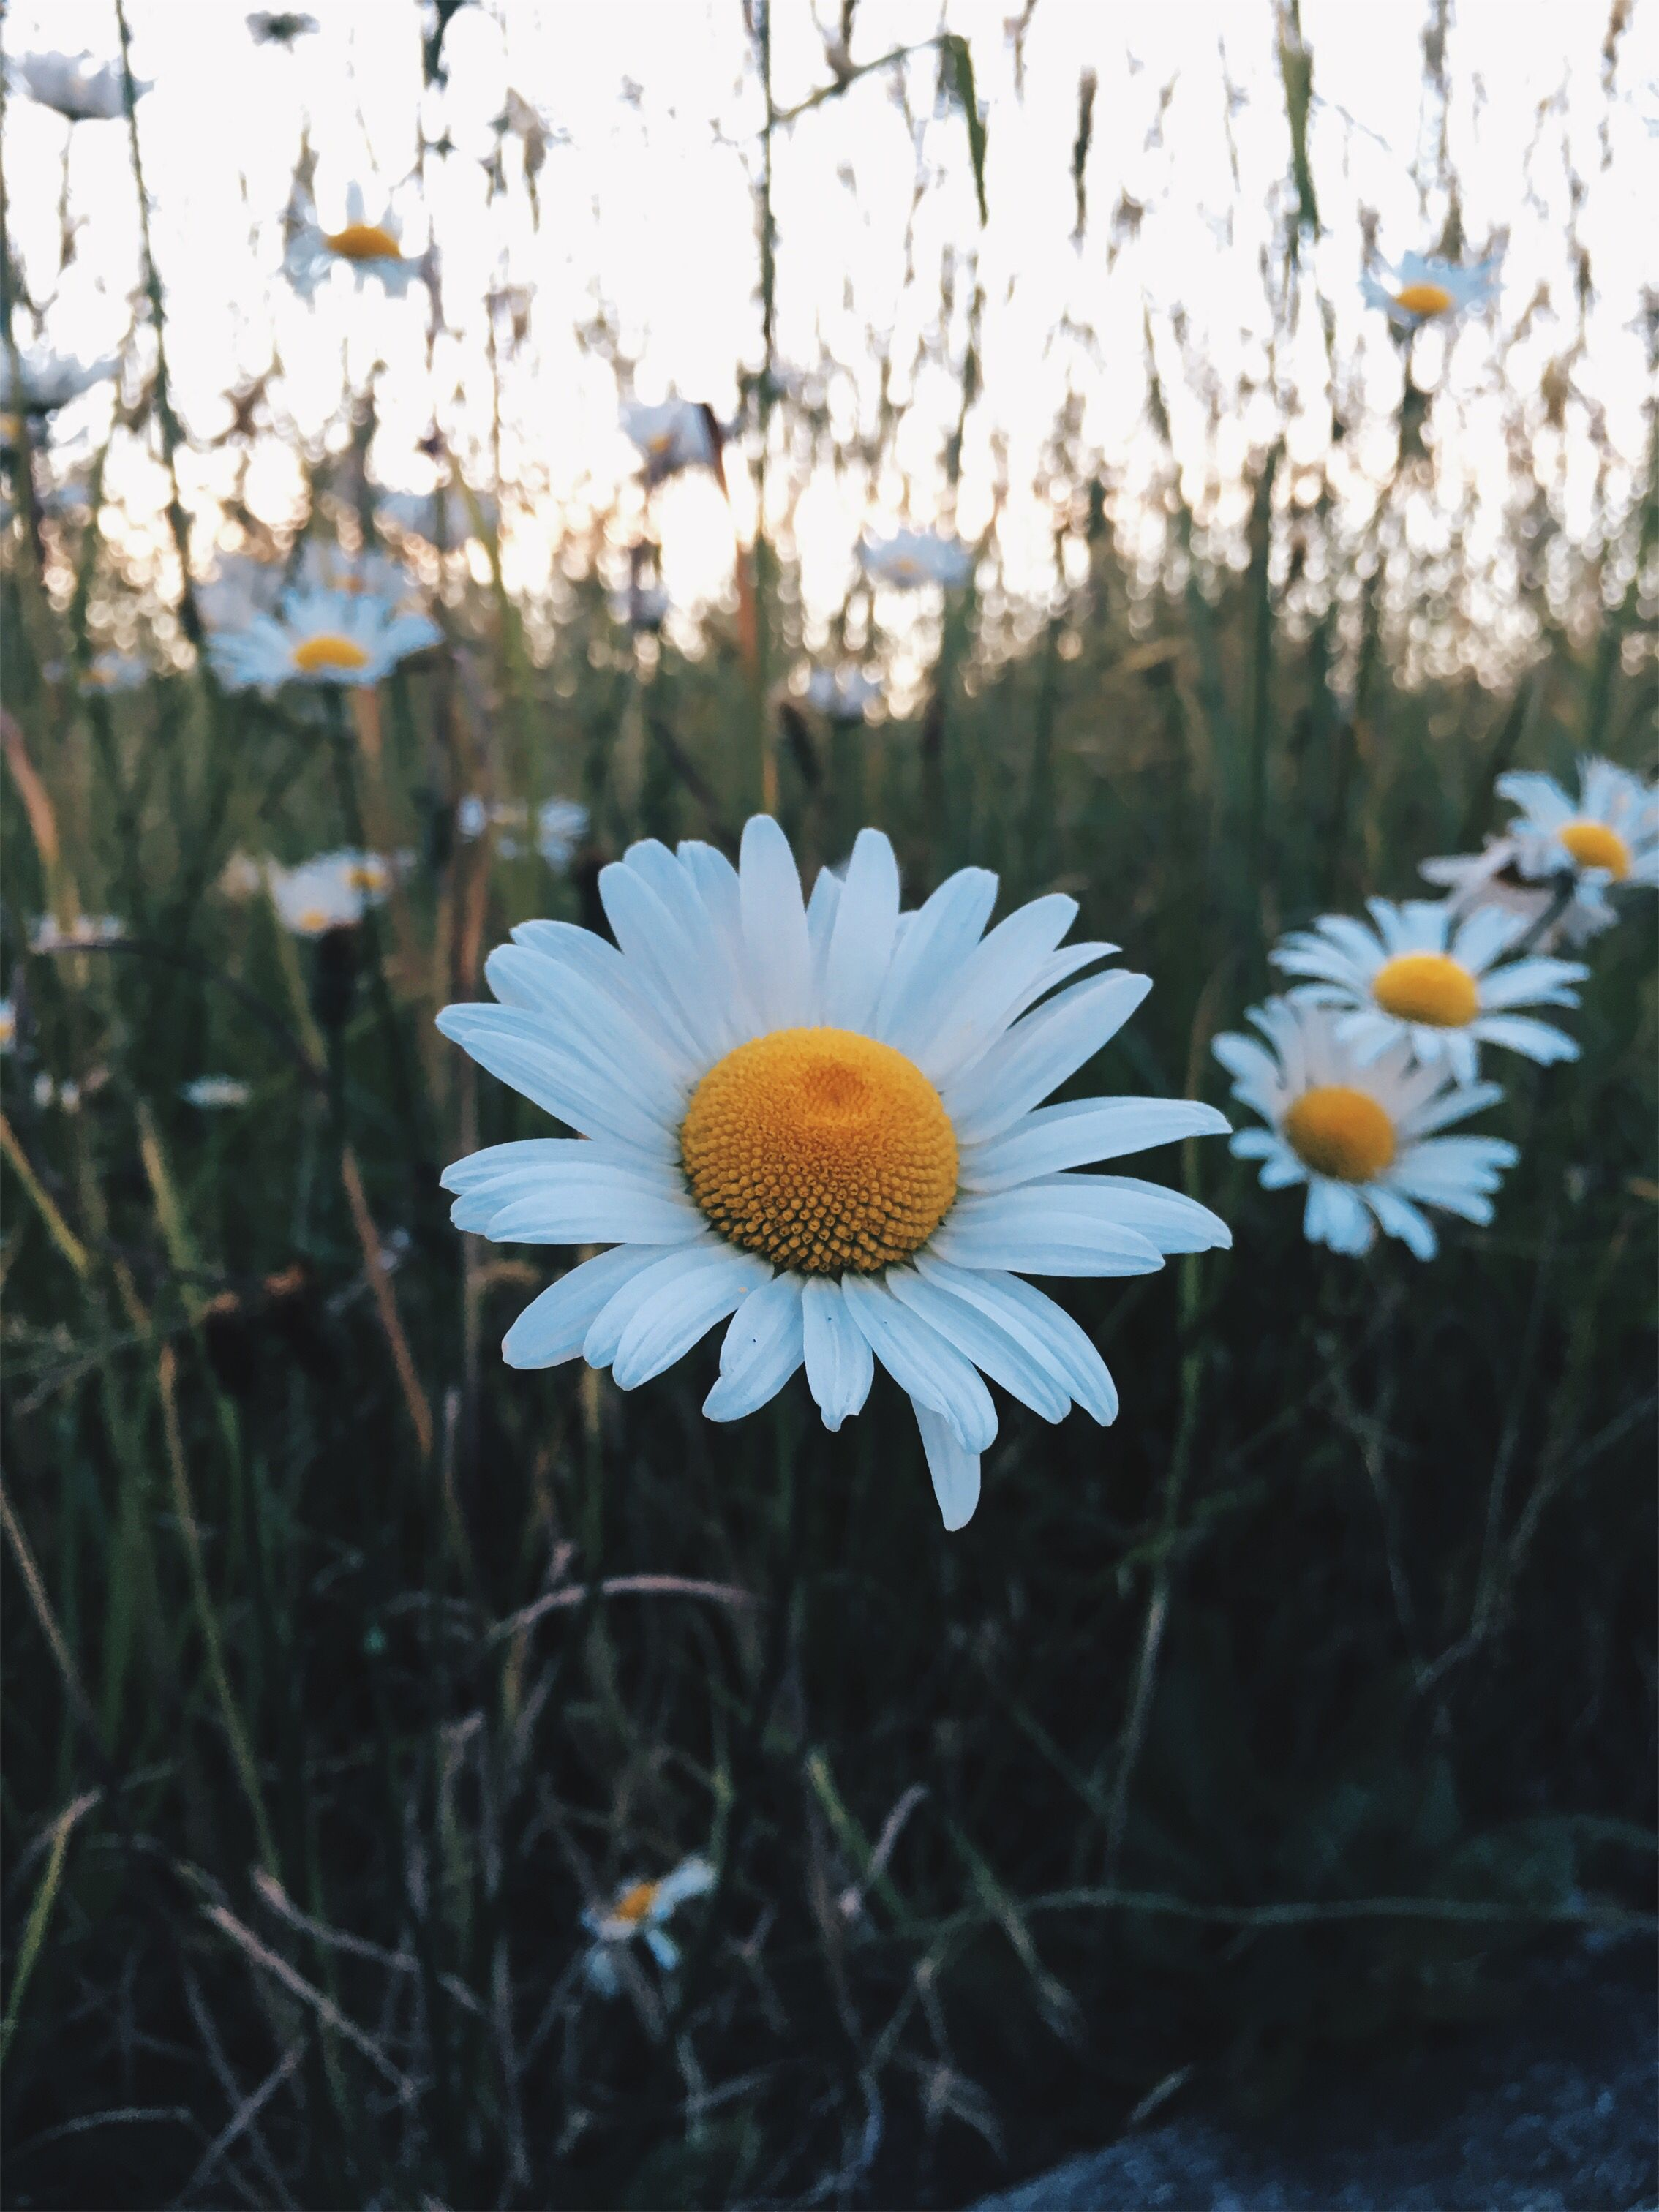 Baezalakew Daisy Flower Photo Photography Tumblr Grass Nature Natural